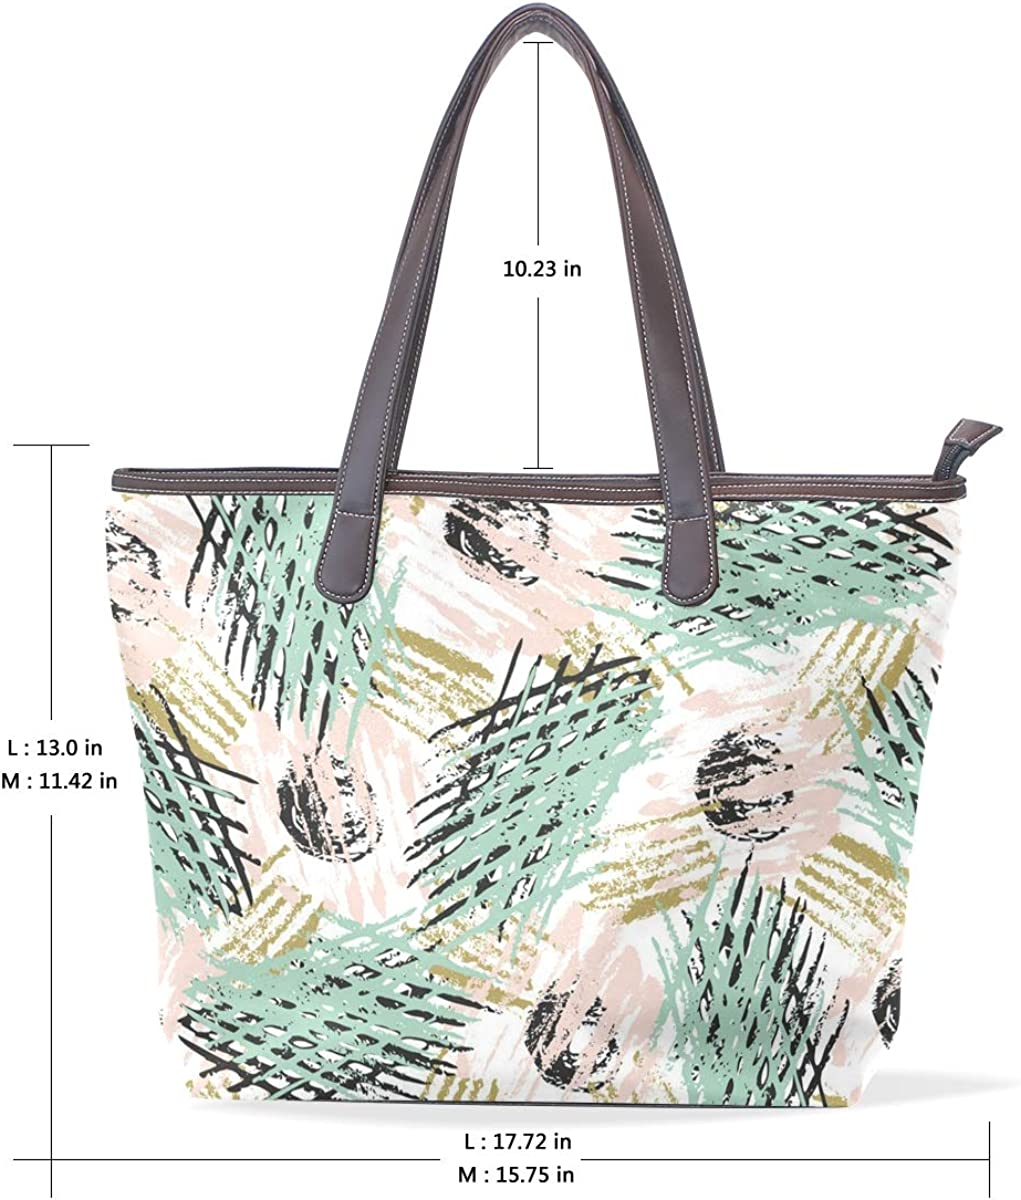 Complex Interlaced Marble PatternWomens Vintage Leather Tote Urban Style Satchel Tote